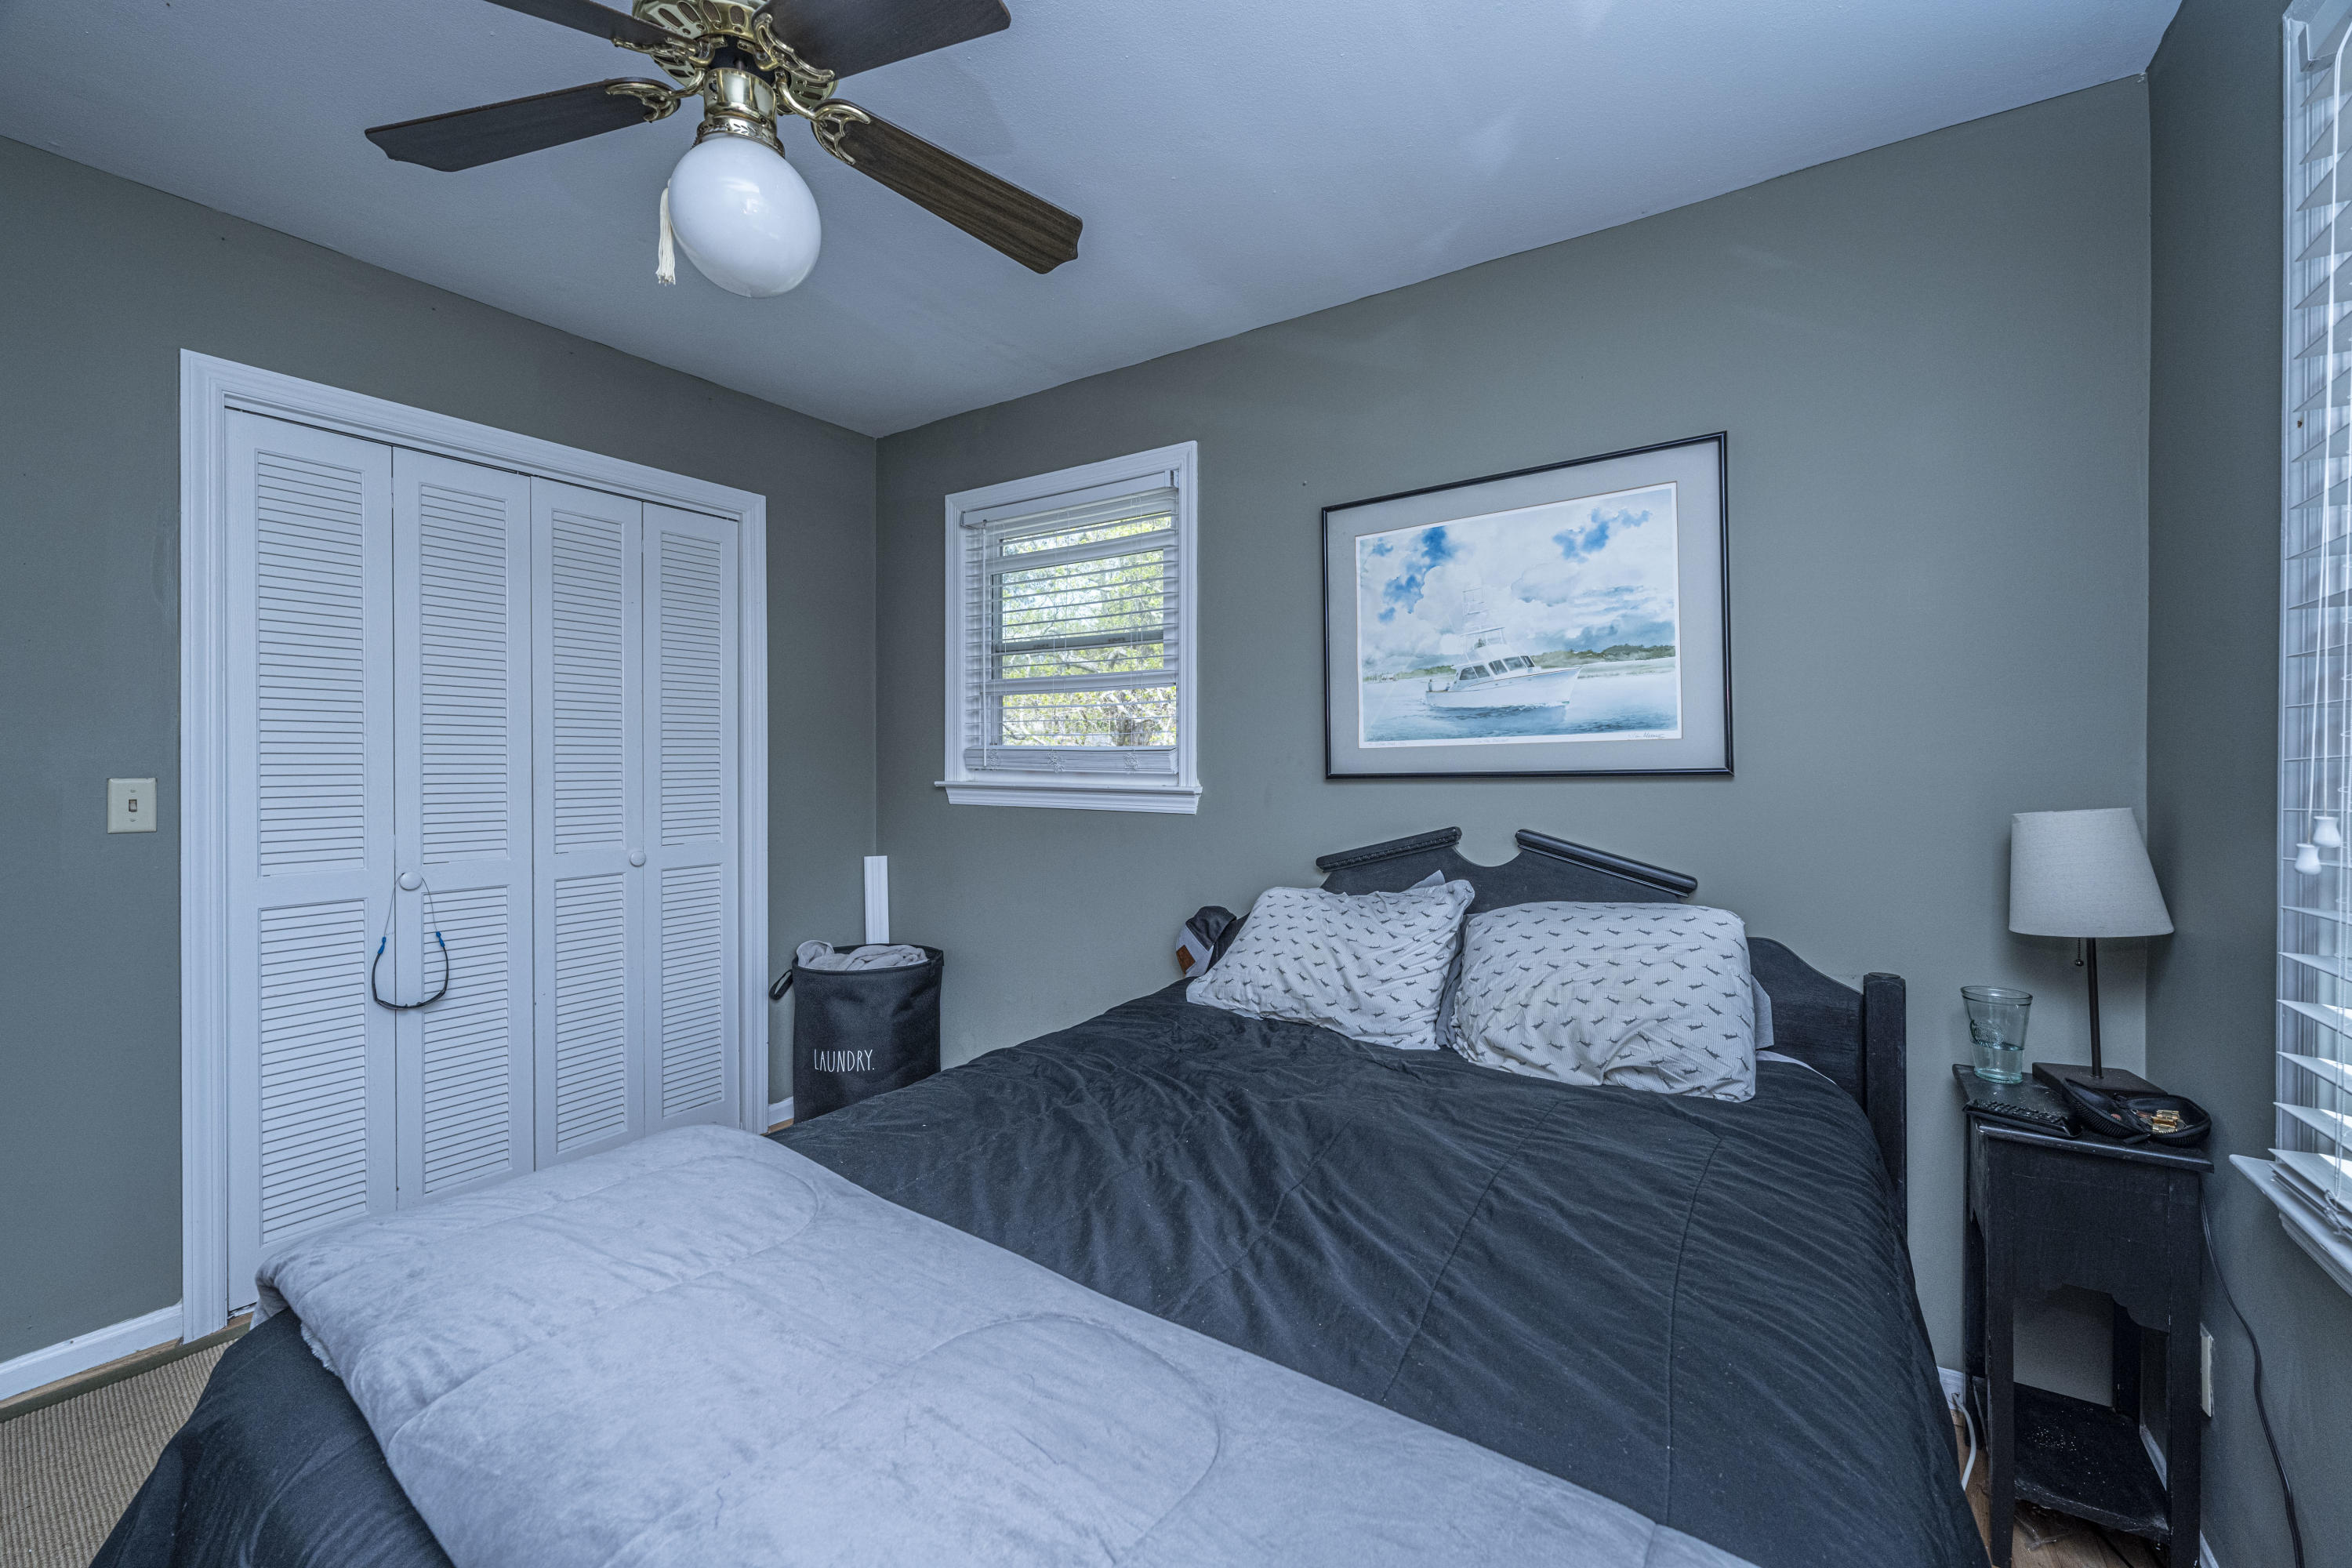 Stiles Point Homes For Sale - 775 Sparrow, Charleston, SC - 9